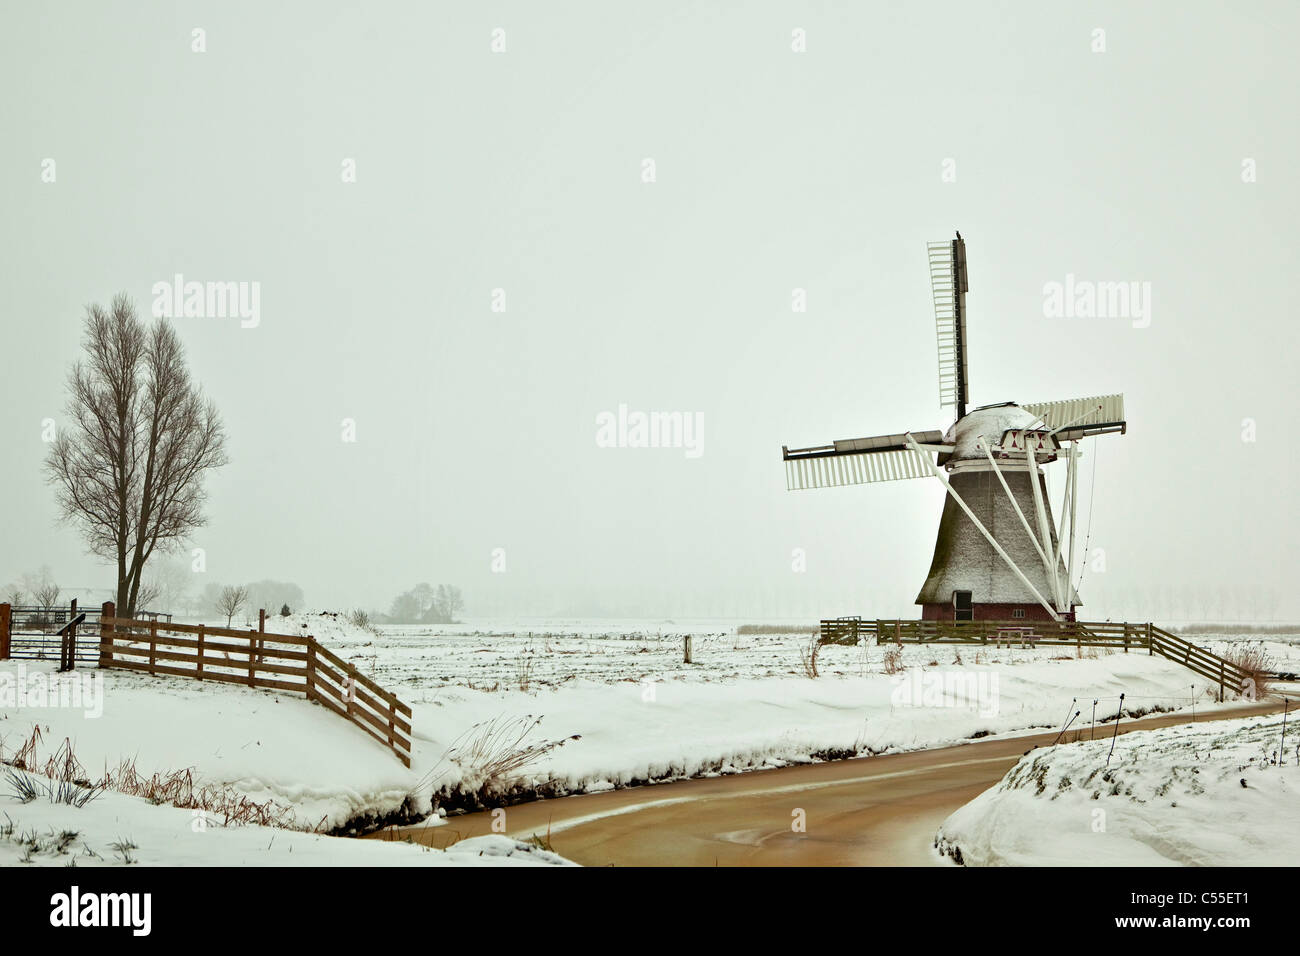 The Netherlands, Garrelsweer, Windmill in snow - Stock Image